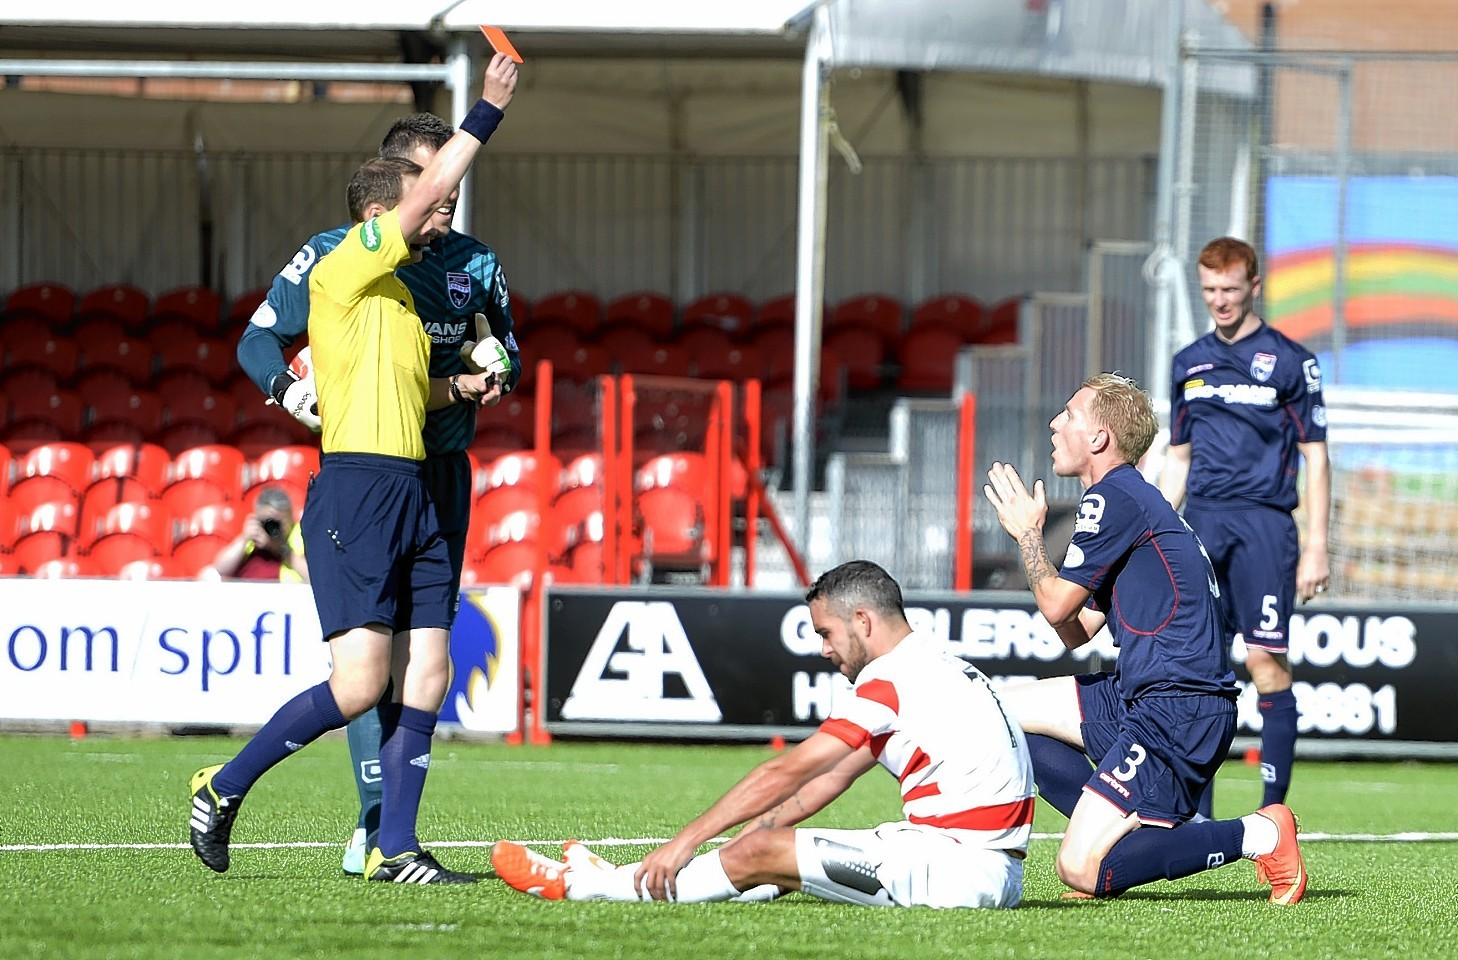 Ross County: The Staggies were defeated 4-0 by Hamilton Accies on Saturday.